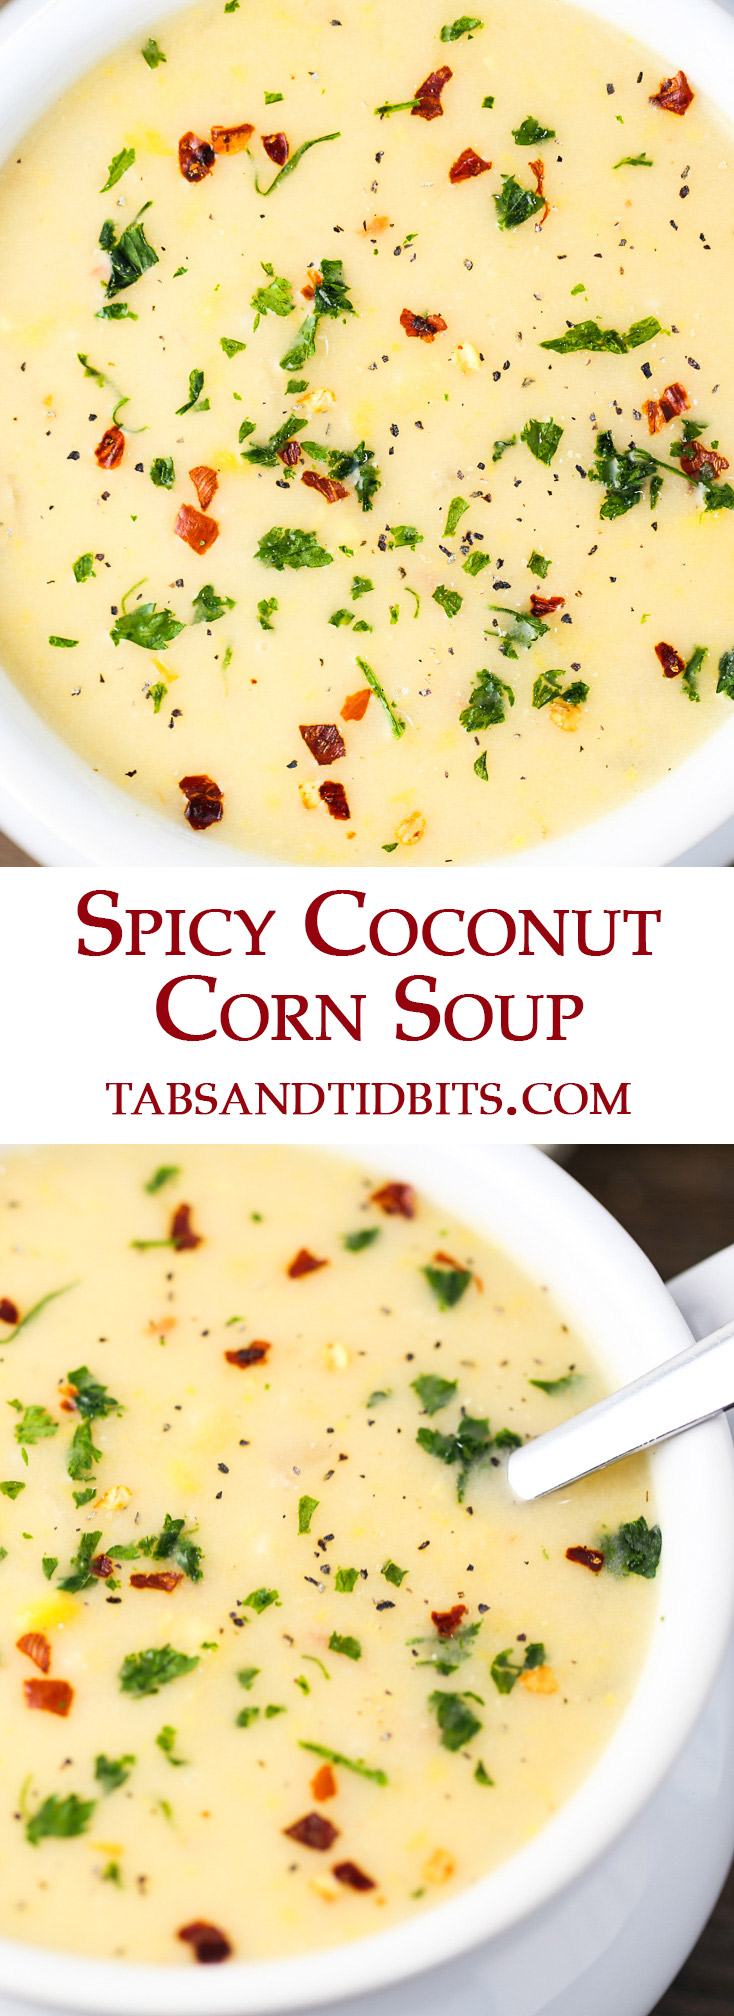 This Spicy Coconut Corn soup is simple and quick to make. Naturally sweet corn and coconut milk with the spiciness of red pepper flakes and balanced out by potatoes.